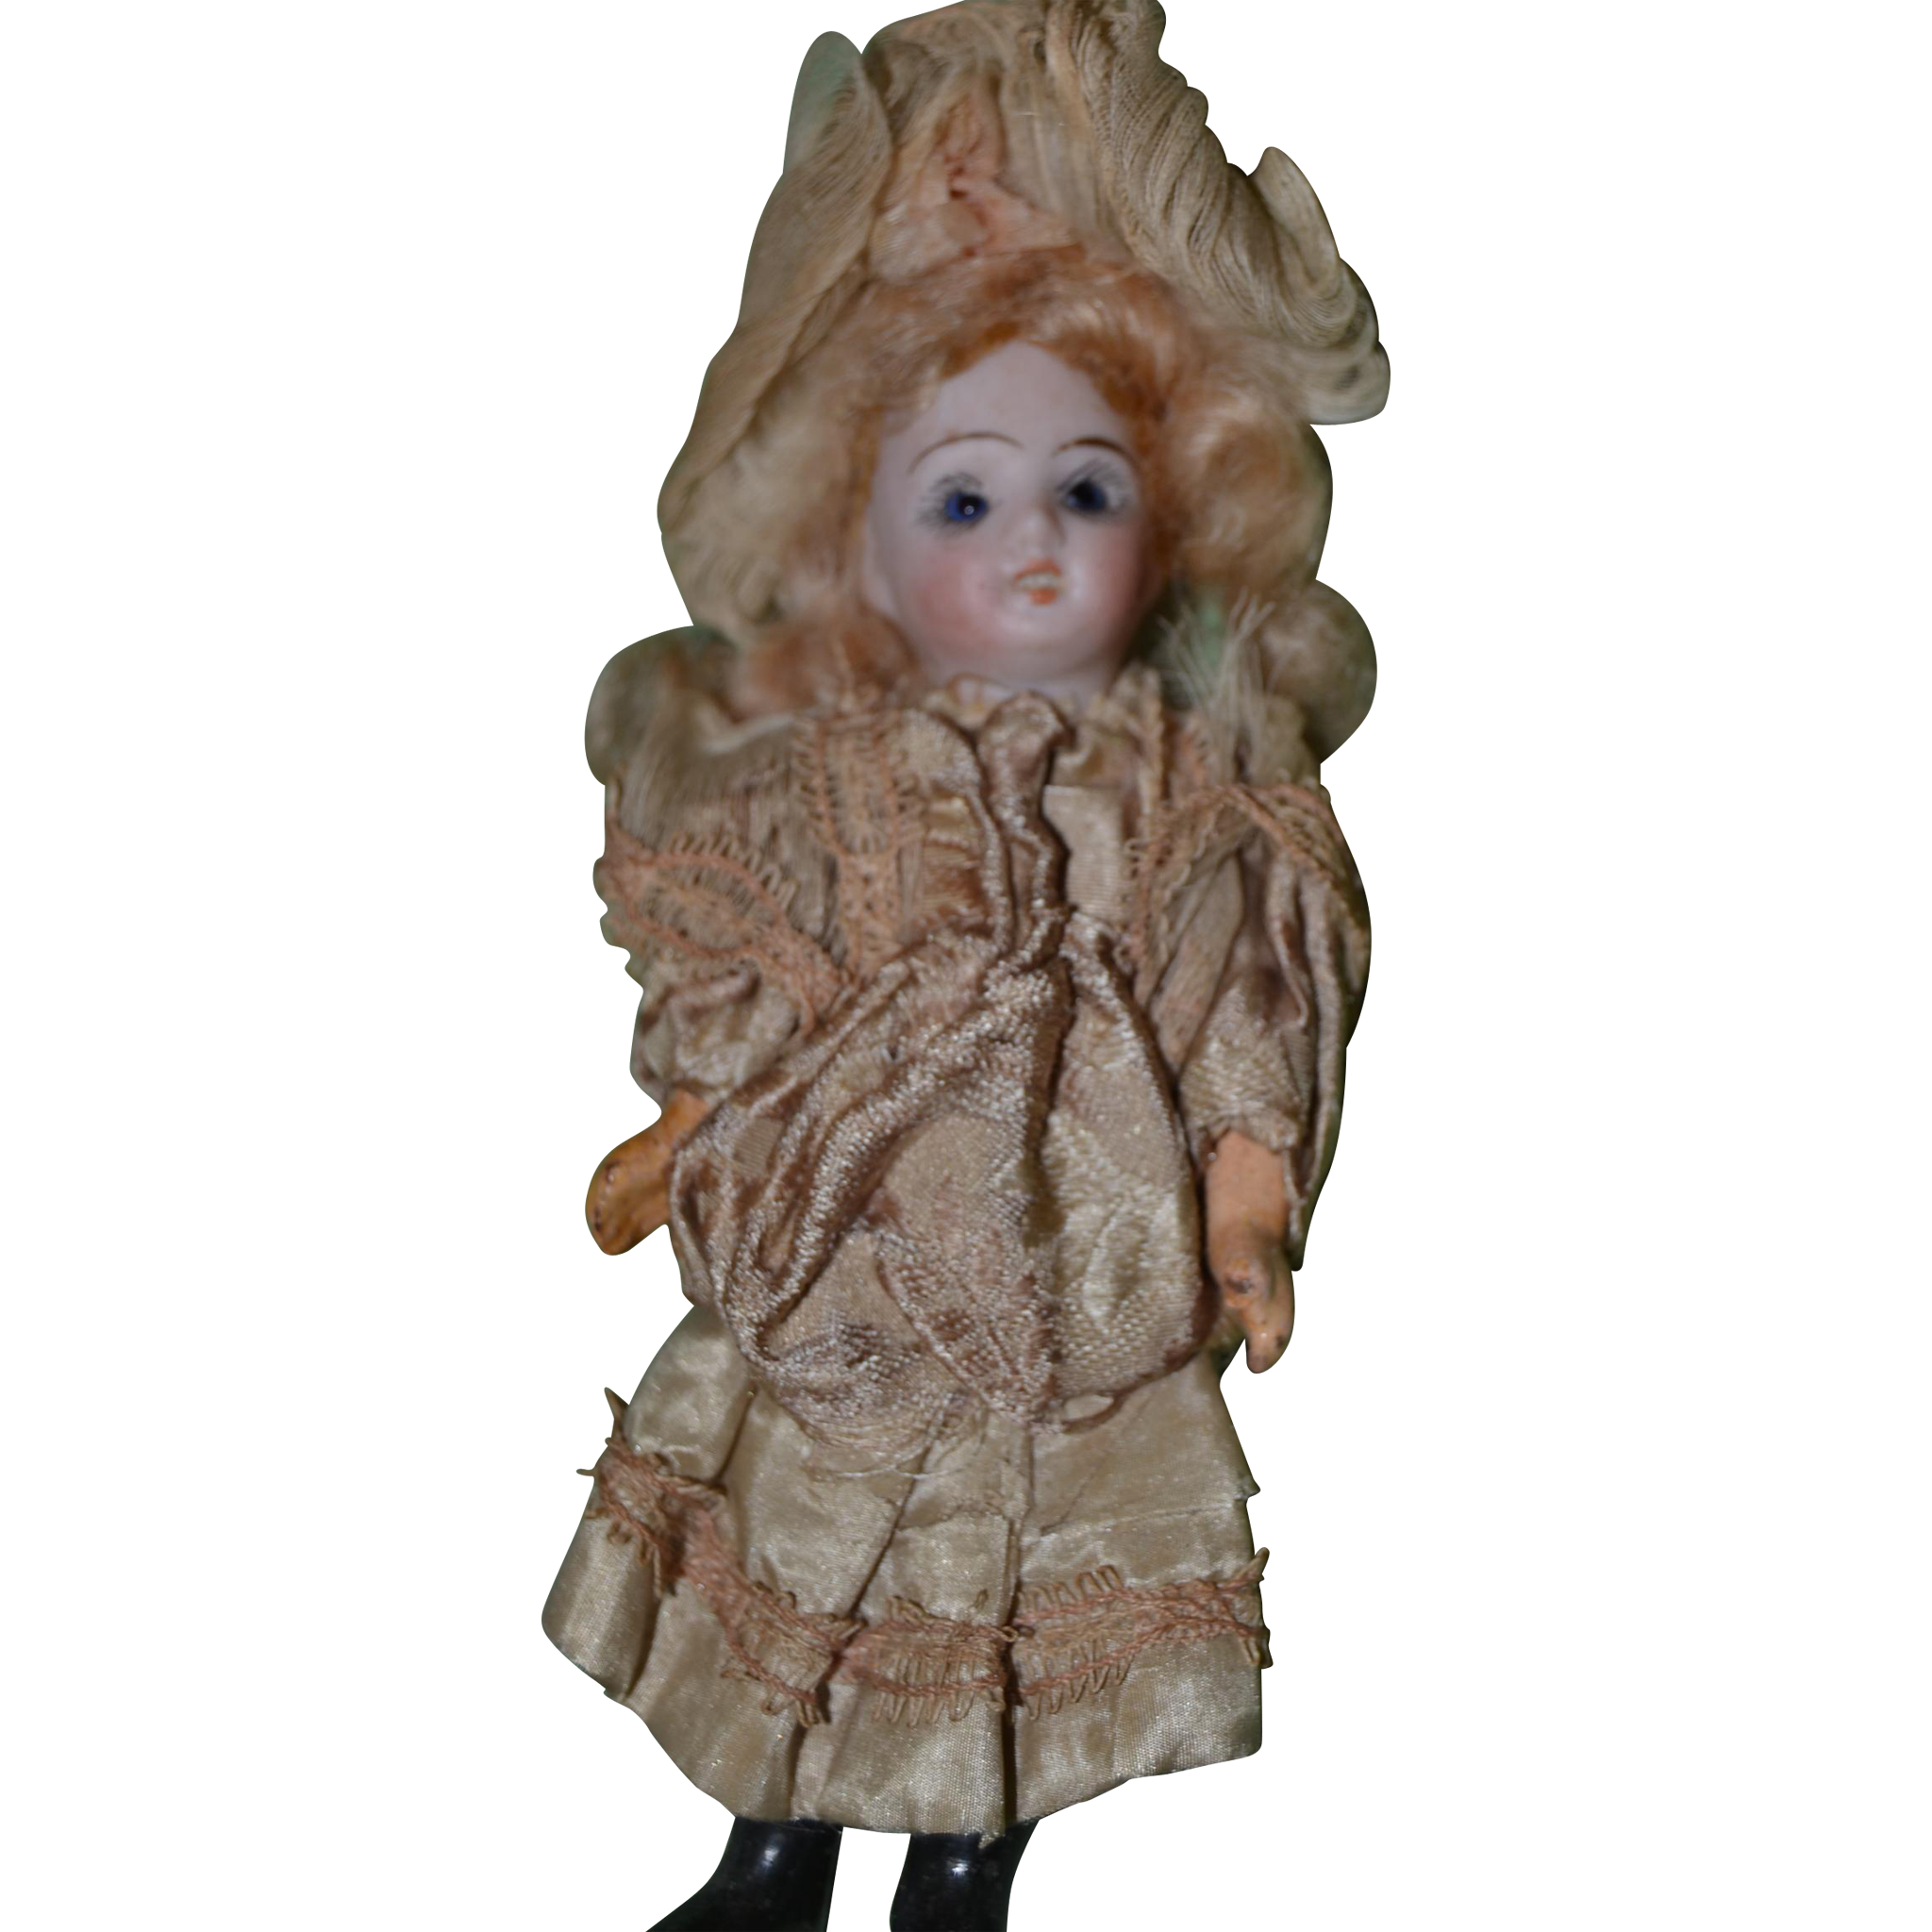 All original little german doll for your doll's house